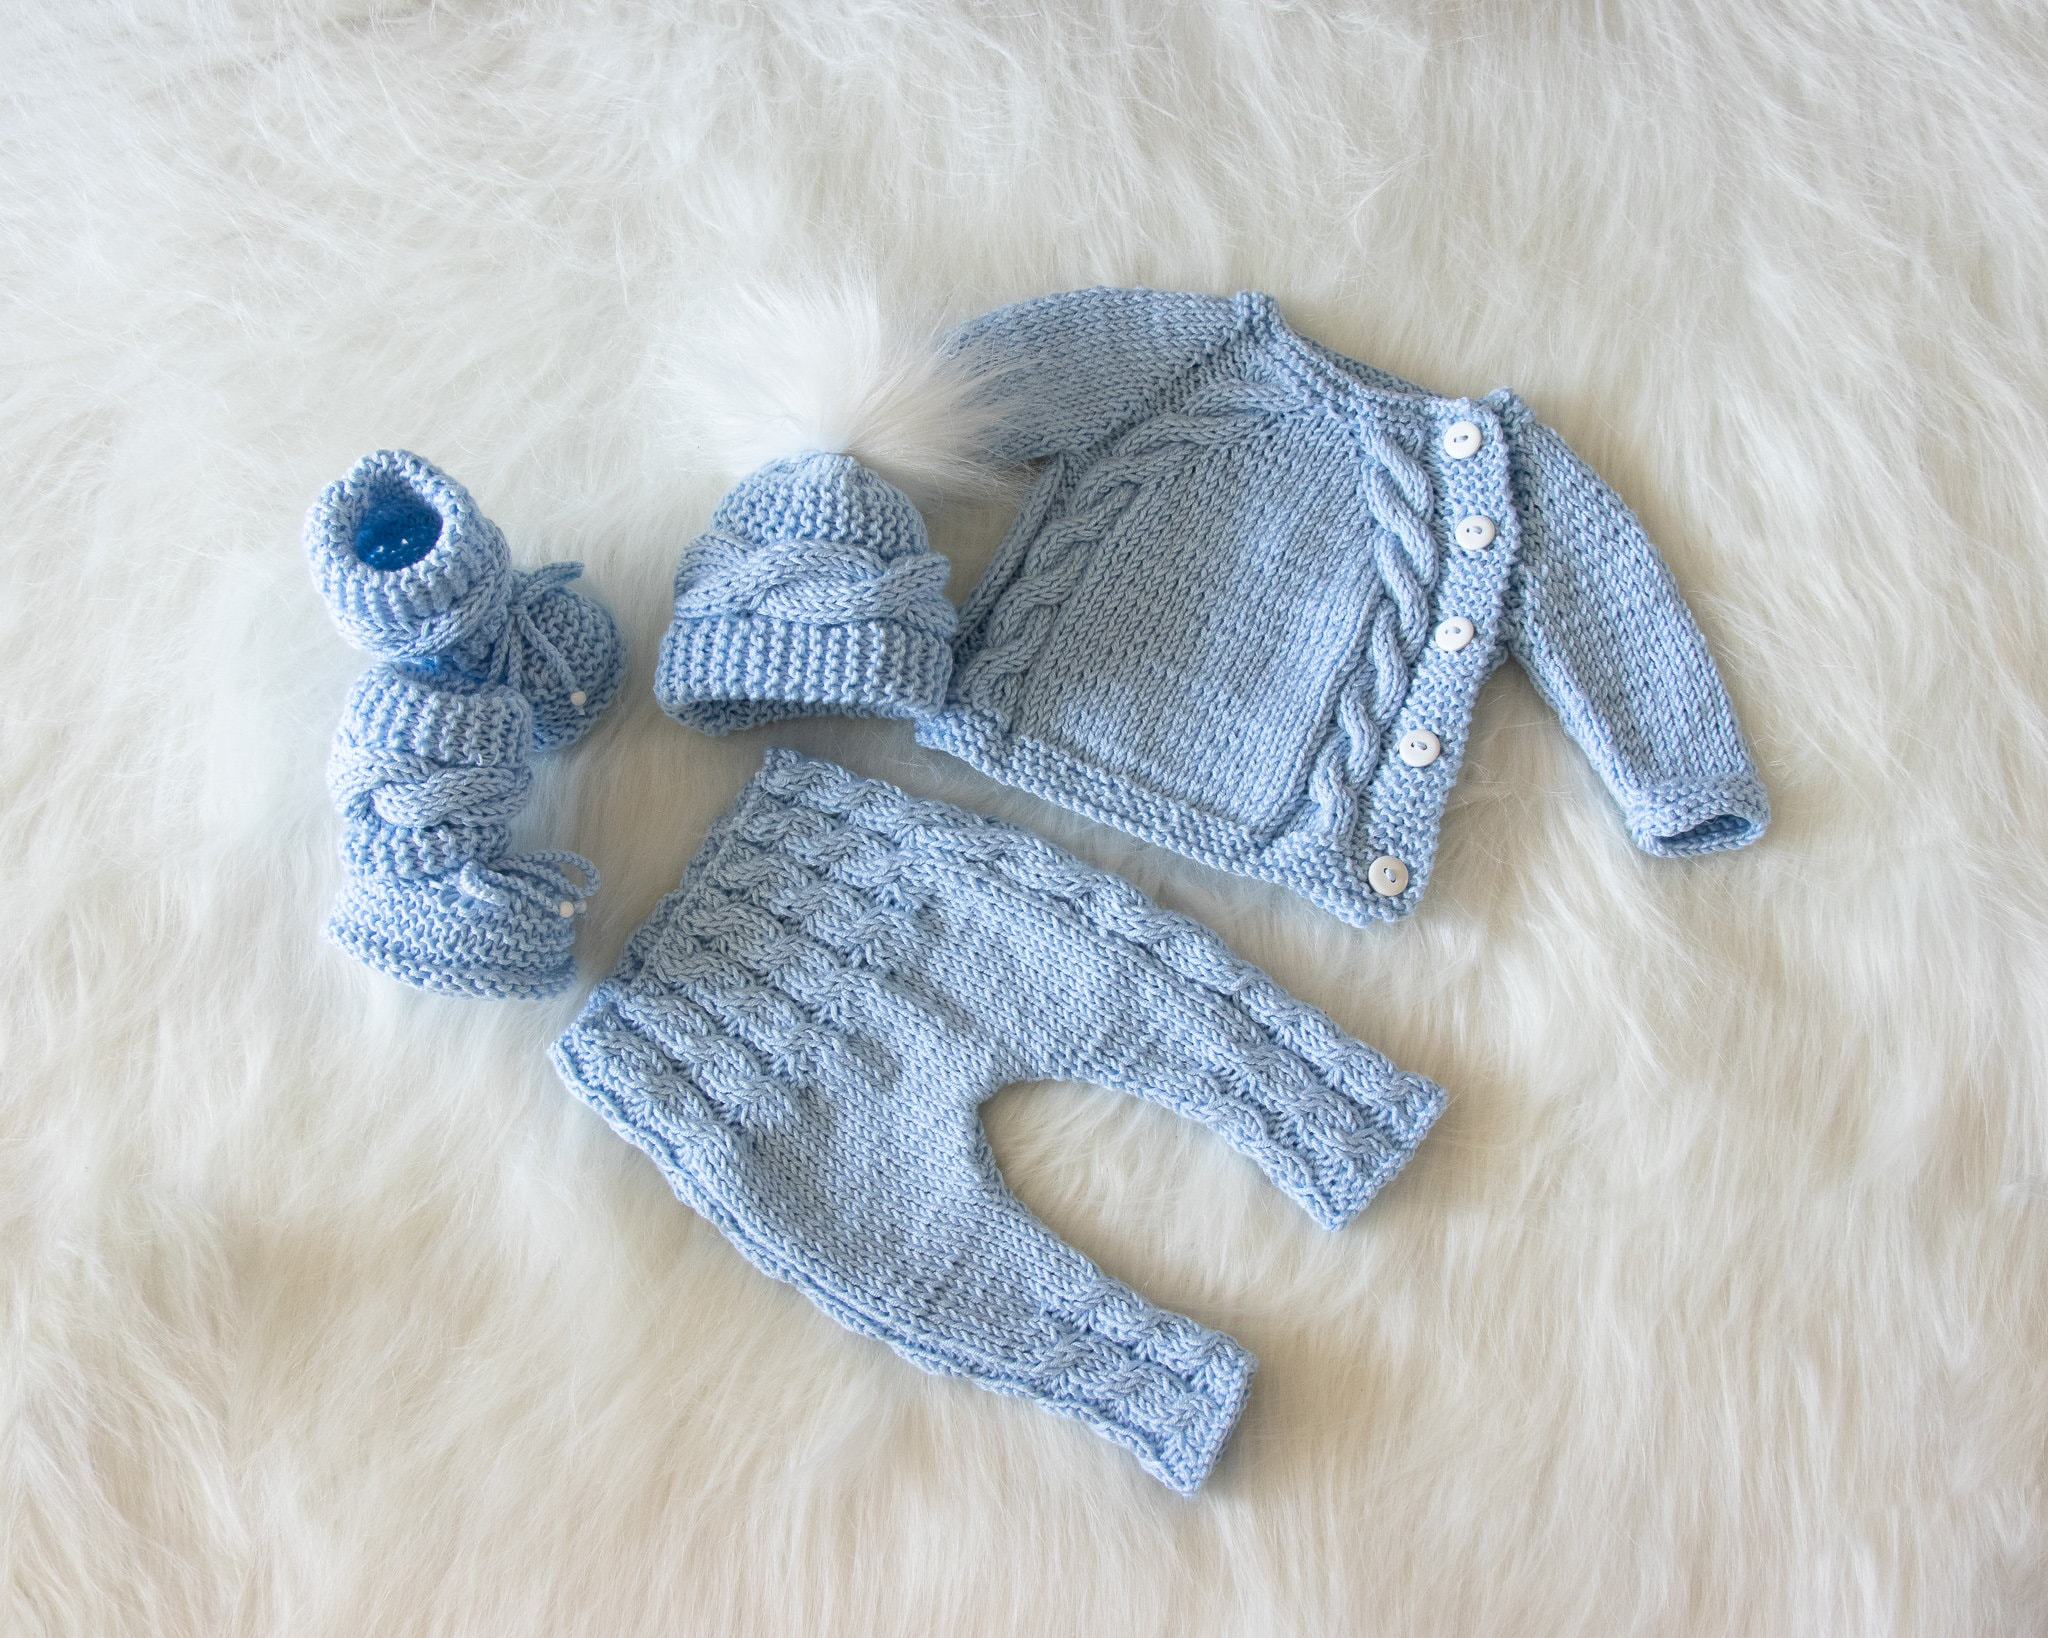 b81b698dabb07 Newborn boy coming home outfit, Baby blue outfit, Hand Knit Newborn ...